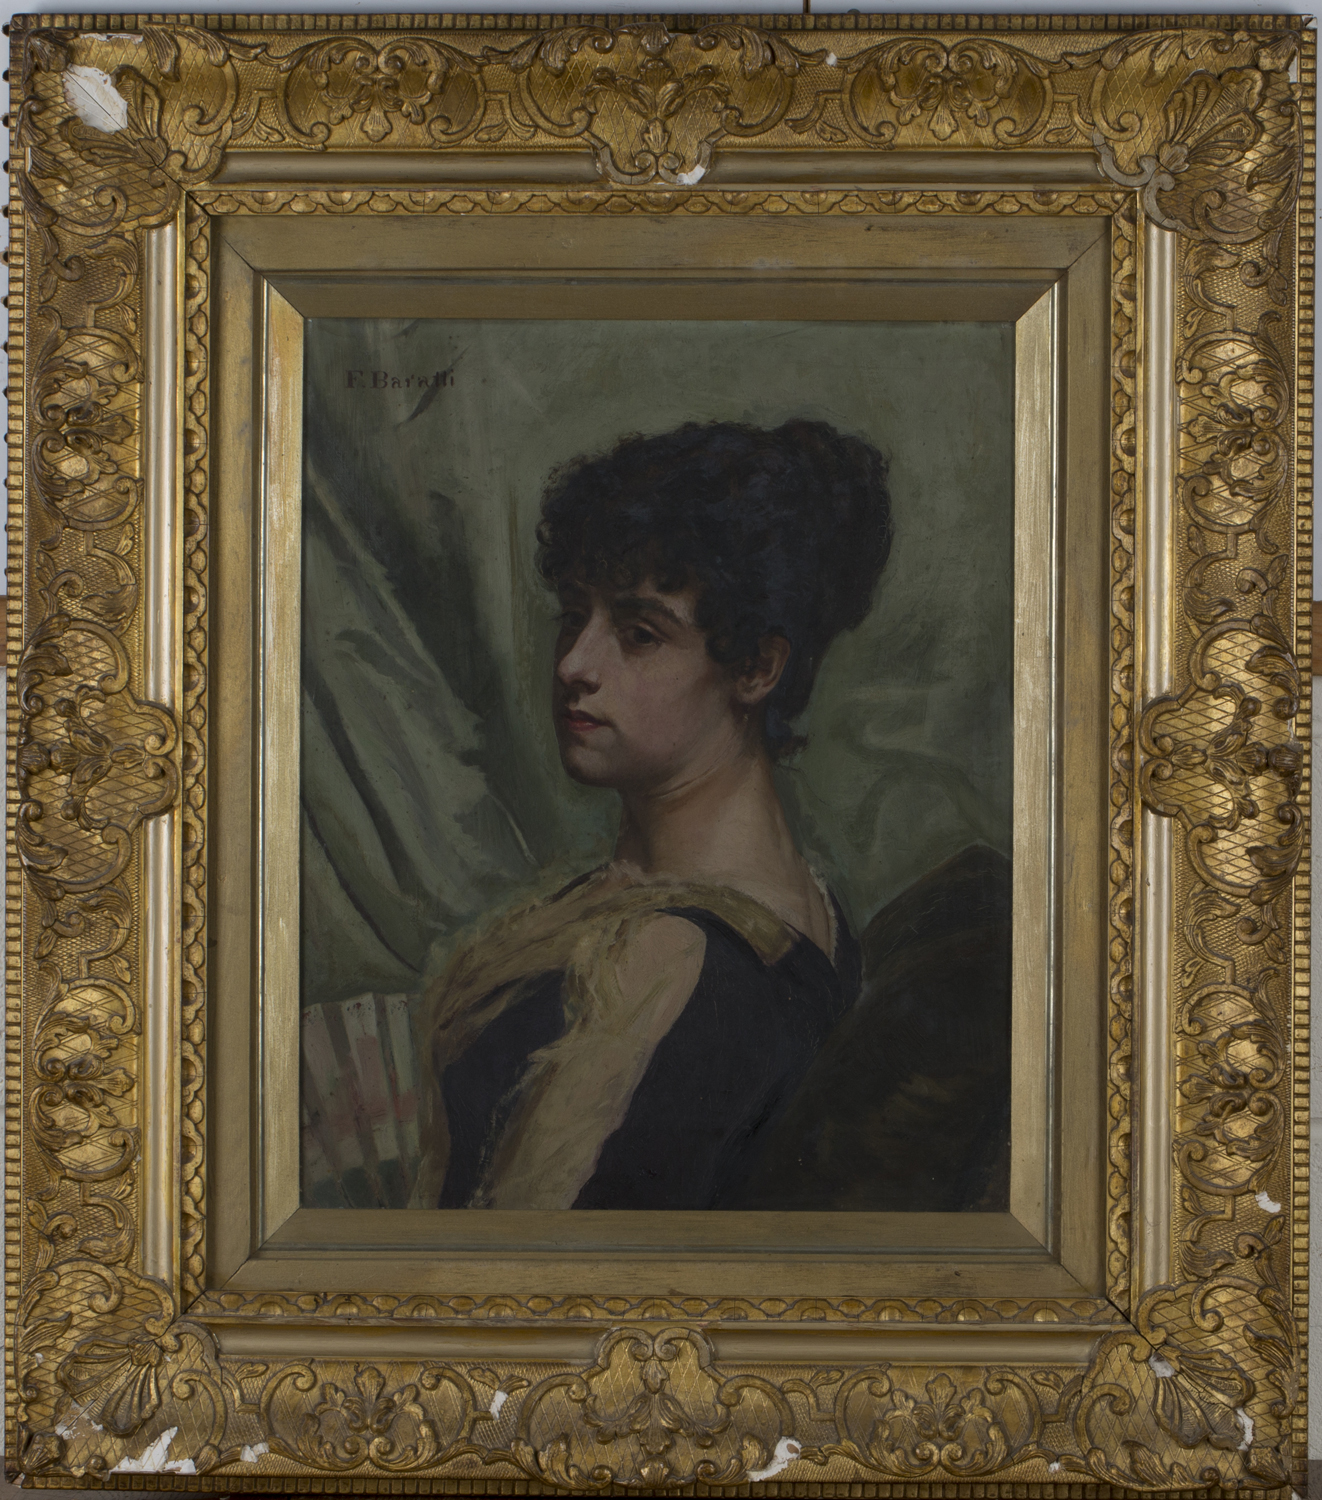 Lot 51 - Filippo Baratti - Portrait of a Lady with a Fan, late 19th/early 20th century oil on canvas, signed,